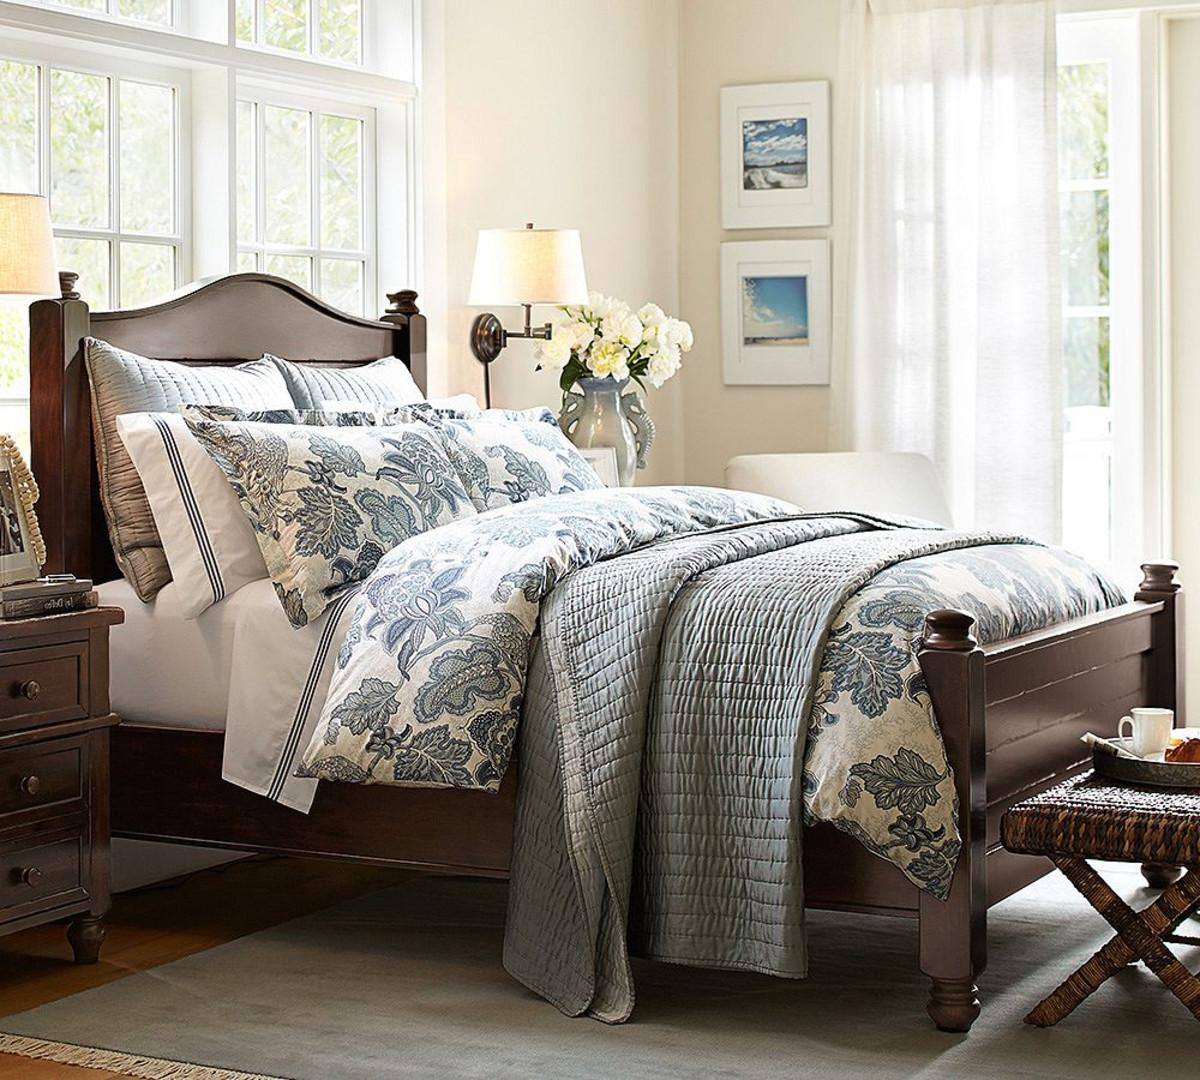 Bedroom Furniture & Bedroom Furniture Sets  Pottery Barn